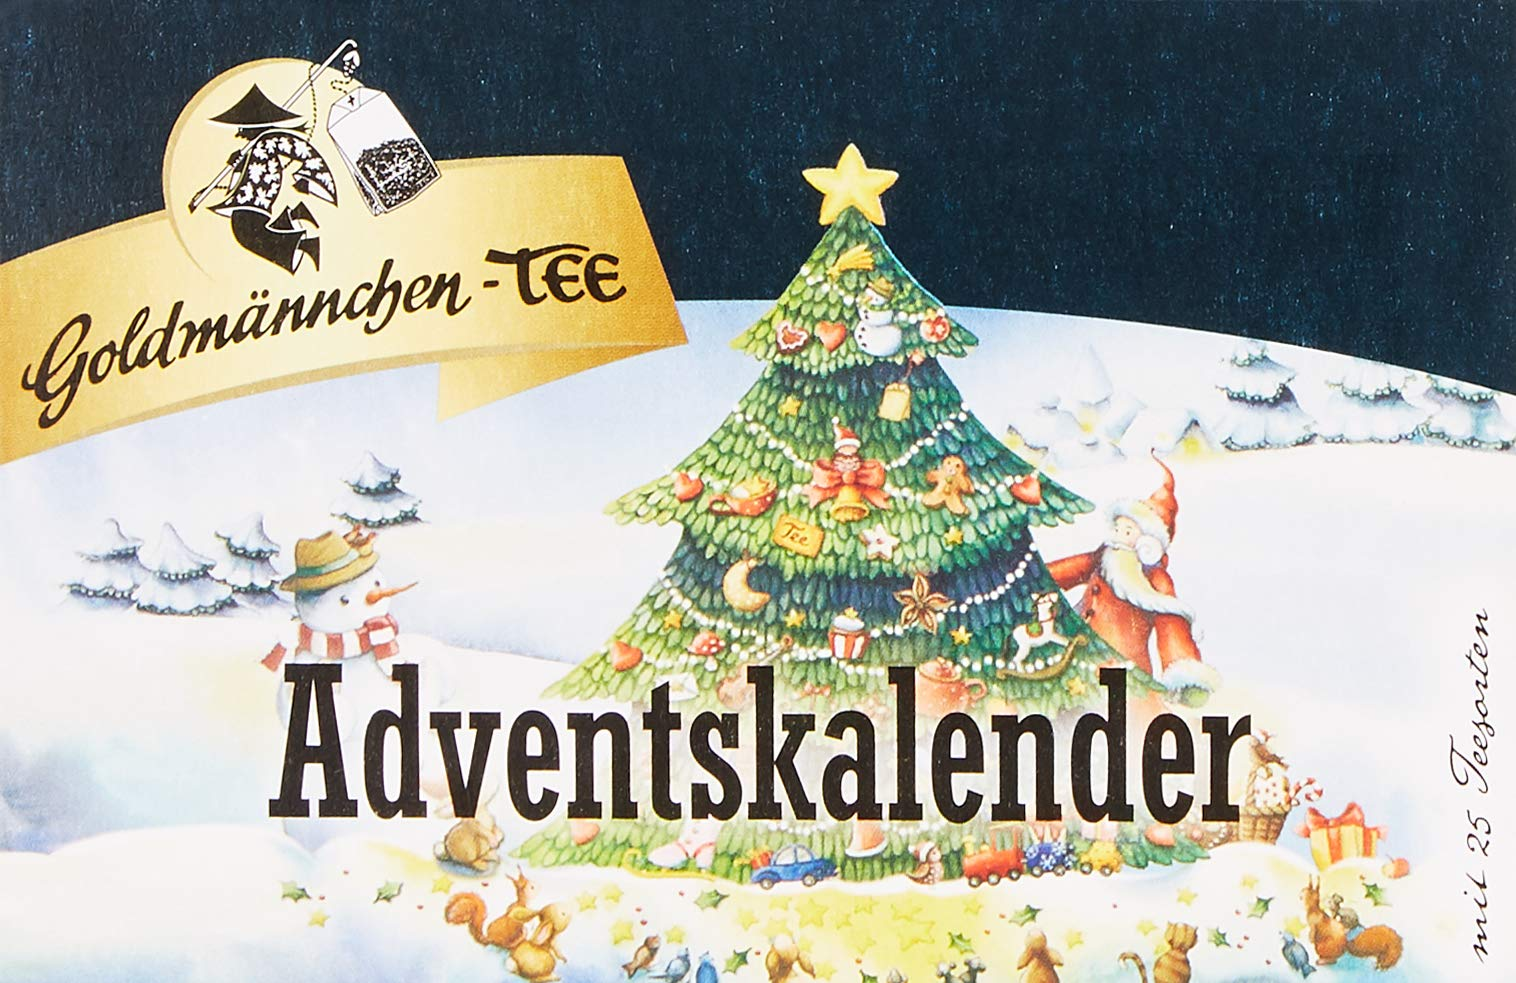 Goldmnnchen-Tee-Adventskalender-1er-Pack-1-x-5015-gm